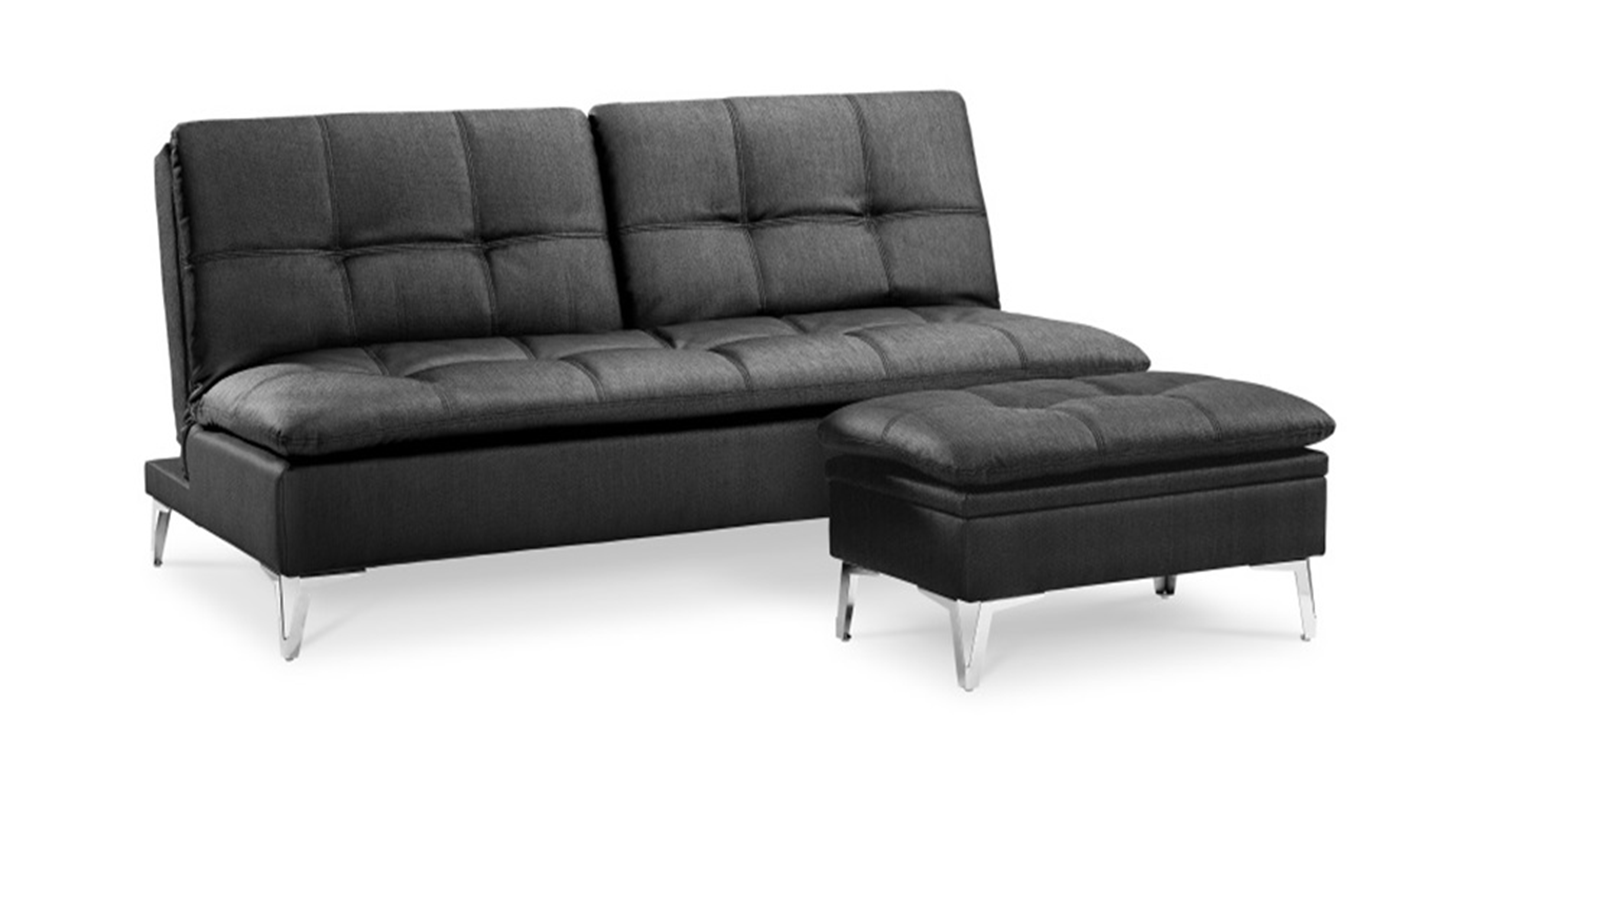 Picture of: Sedona Extendable Fabric Click Clack Sofabed Harvey Norman Malaysia